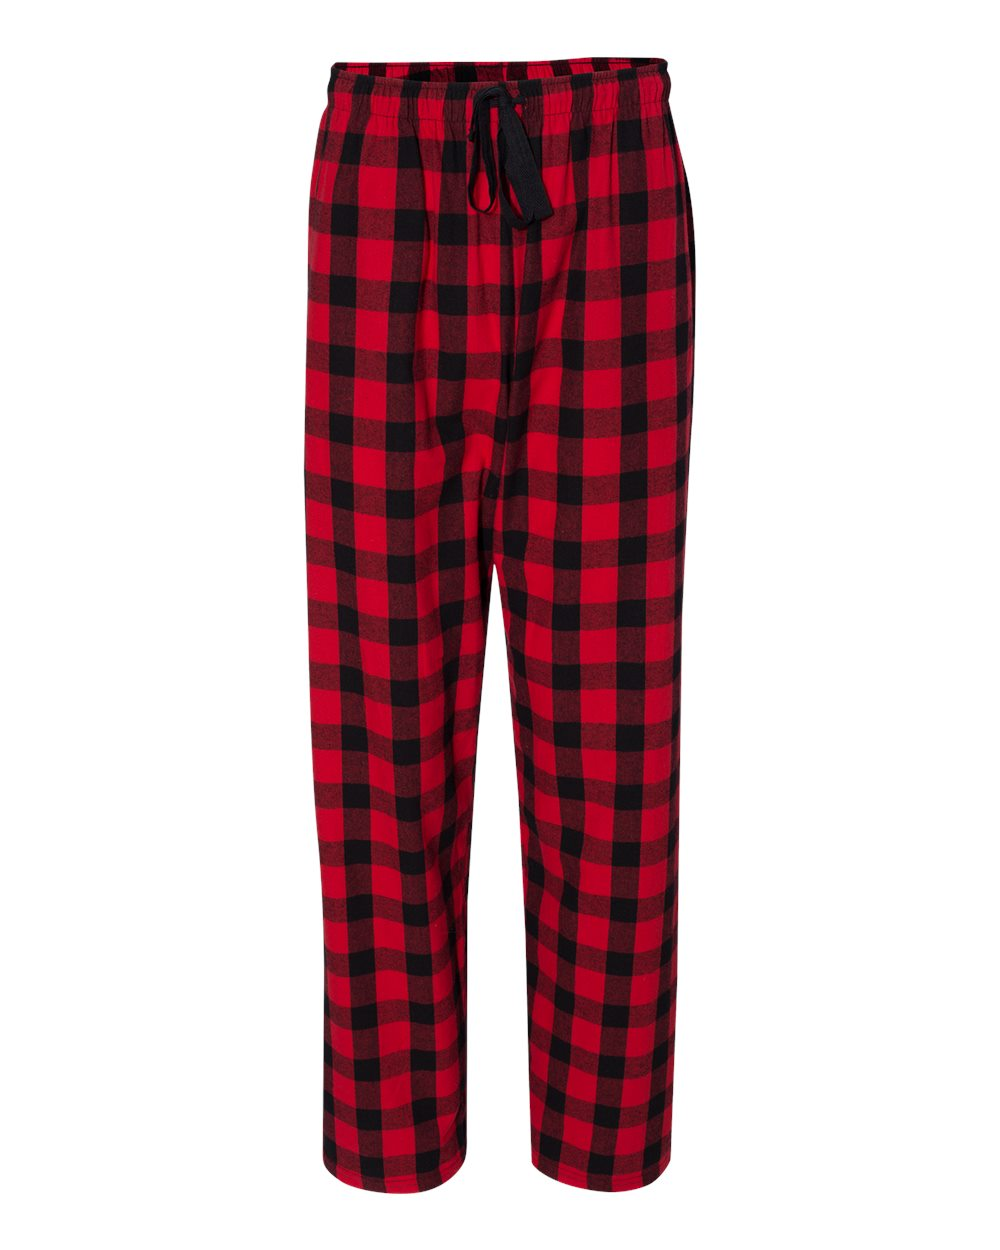 Boxercraft-Unisex-Flannel-Pants-With-Pockets-Pajama-Pants-F20-up-to-2XL thumbnail 39